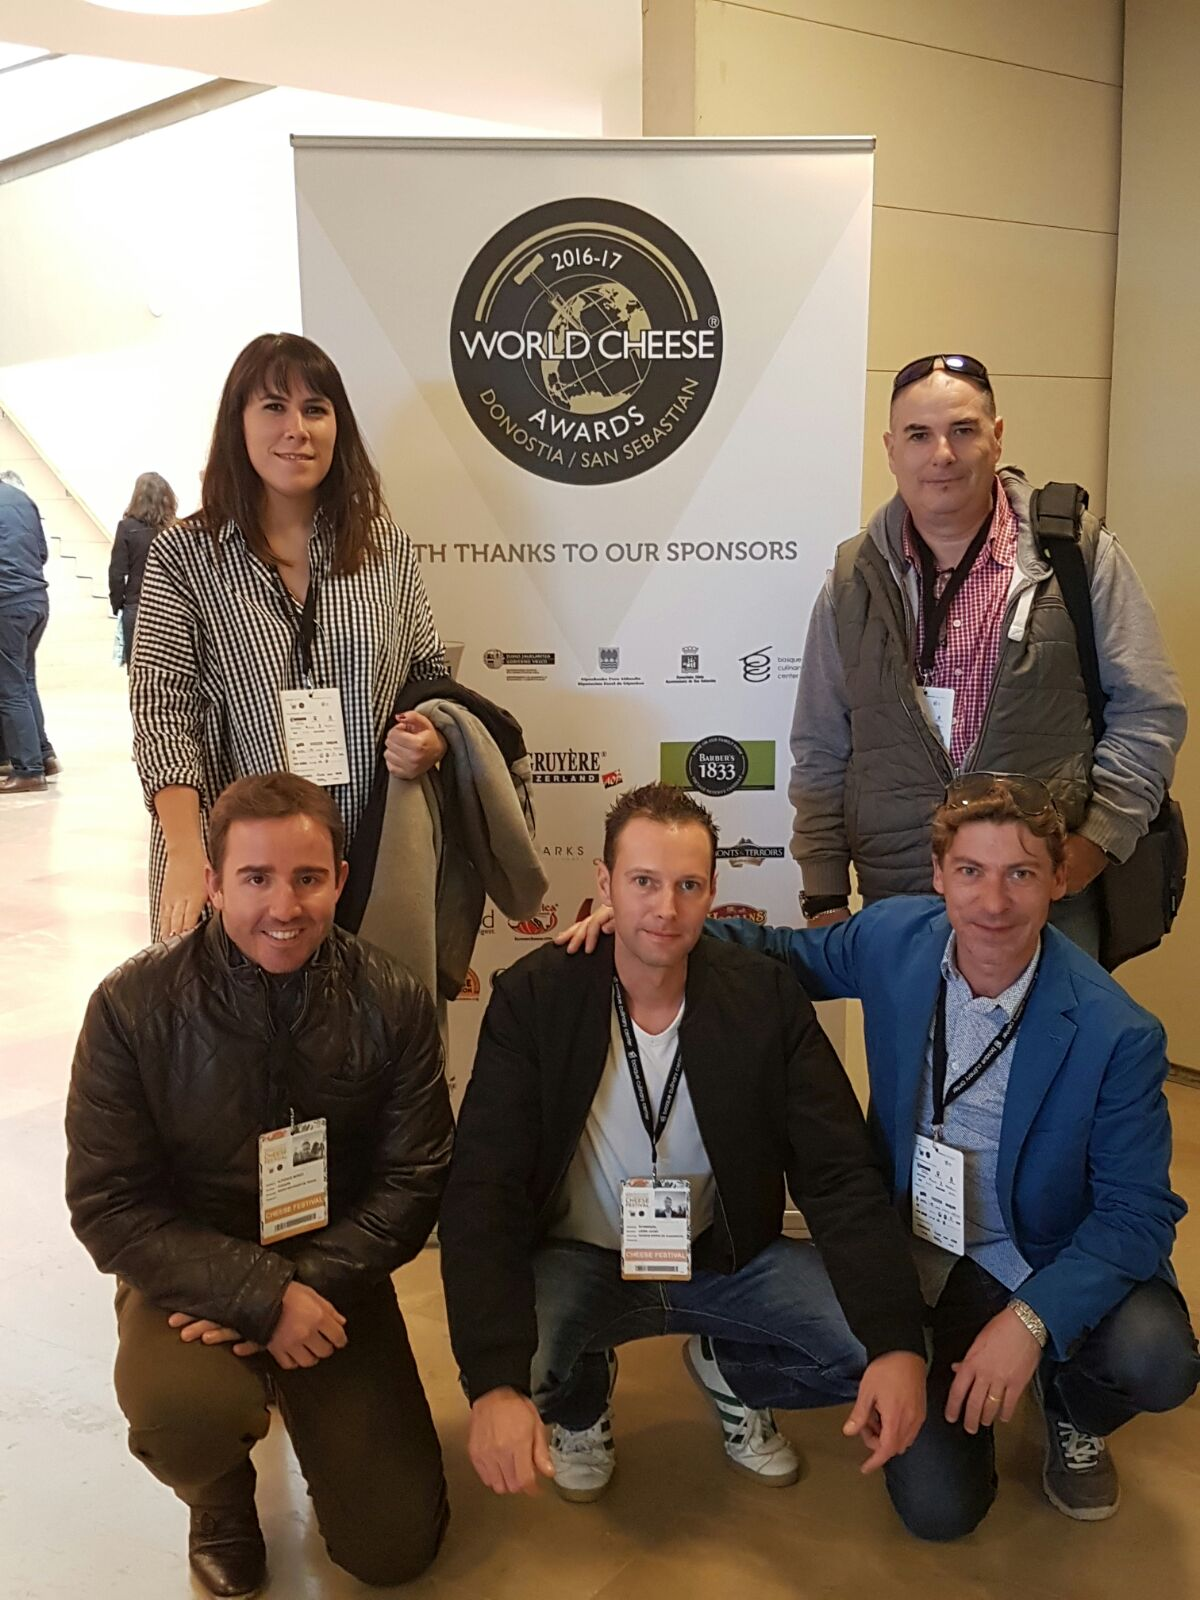 Equipo de Sierra de Albarracín en los World Cheese Awards